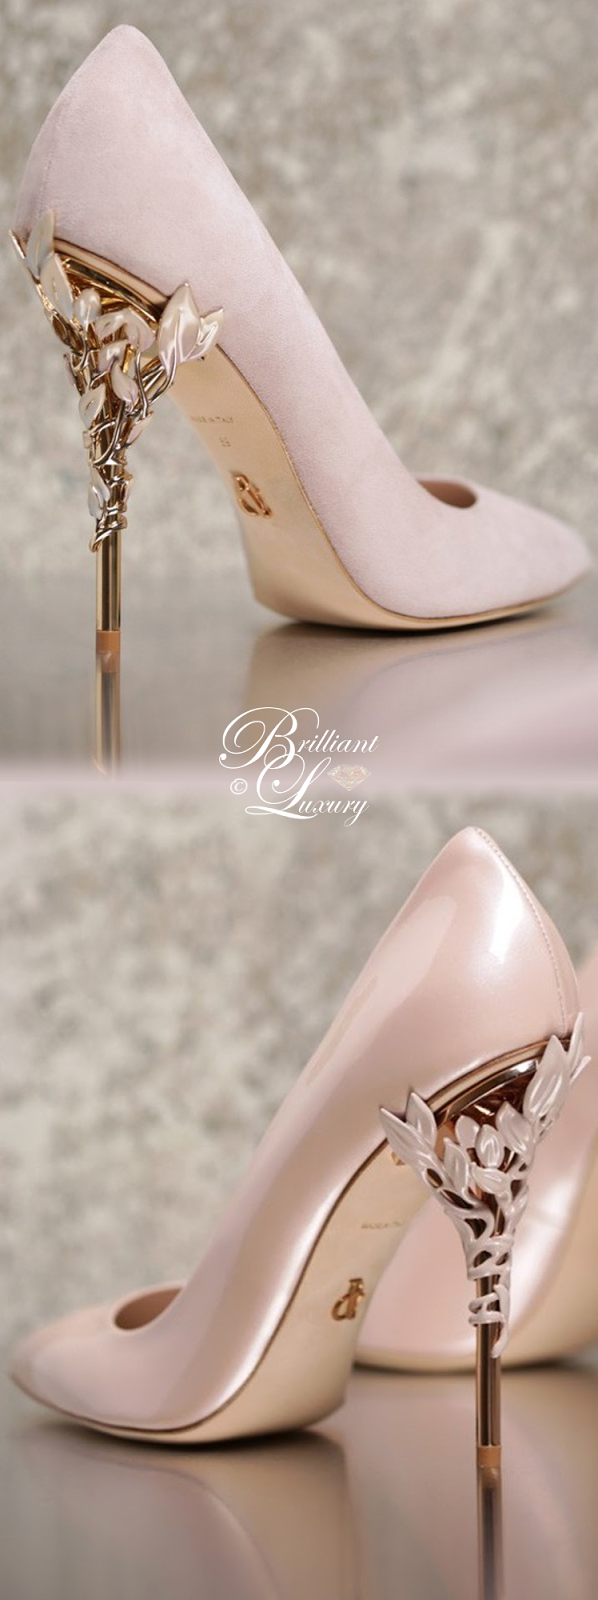 Brilliant Luxury ♦ Ralph and Russo Eden Eve Pump in Baby Pink with Enamelled Rose Gold Leaves